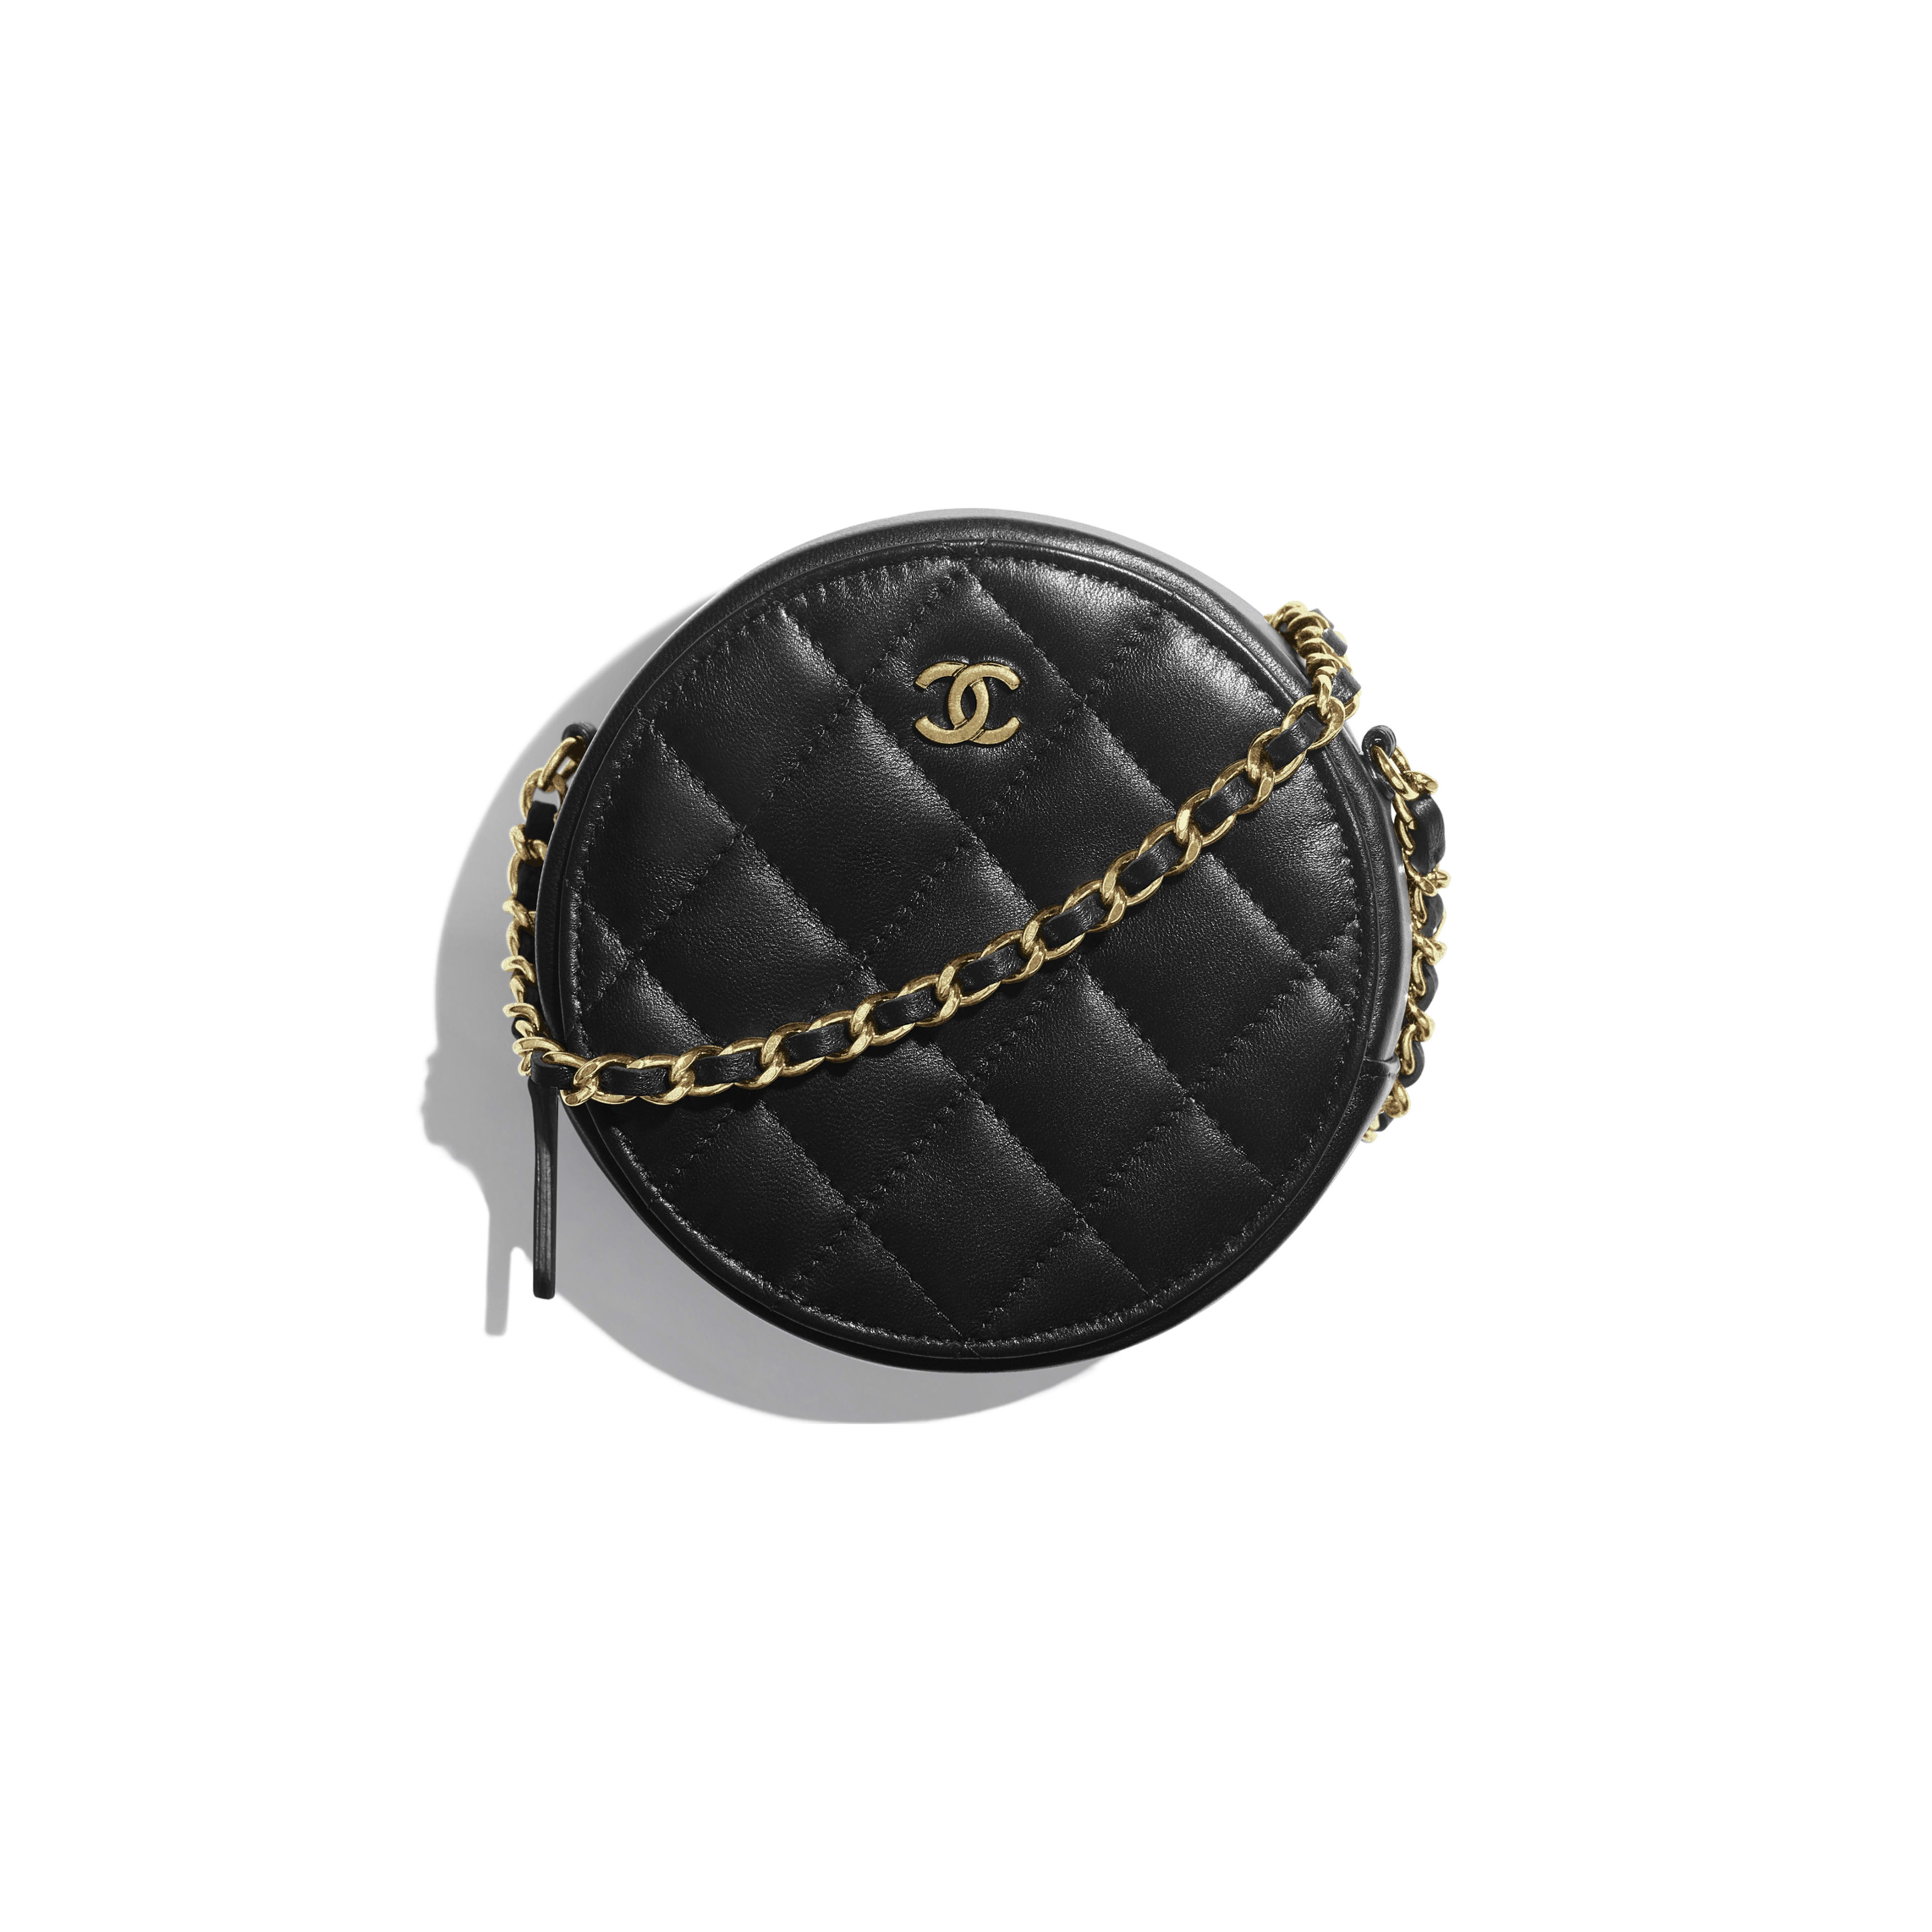 Classic Clutch with Chain - Black - Lambskin & Gold-Tone Metal - Default view - see full sized version